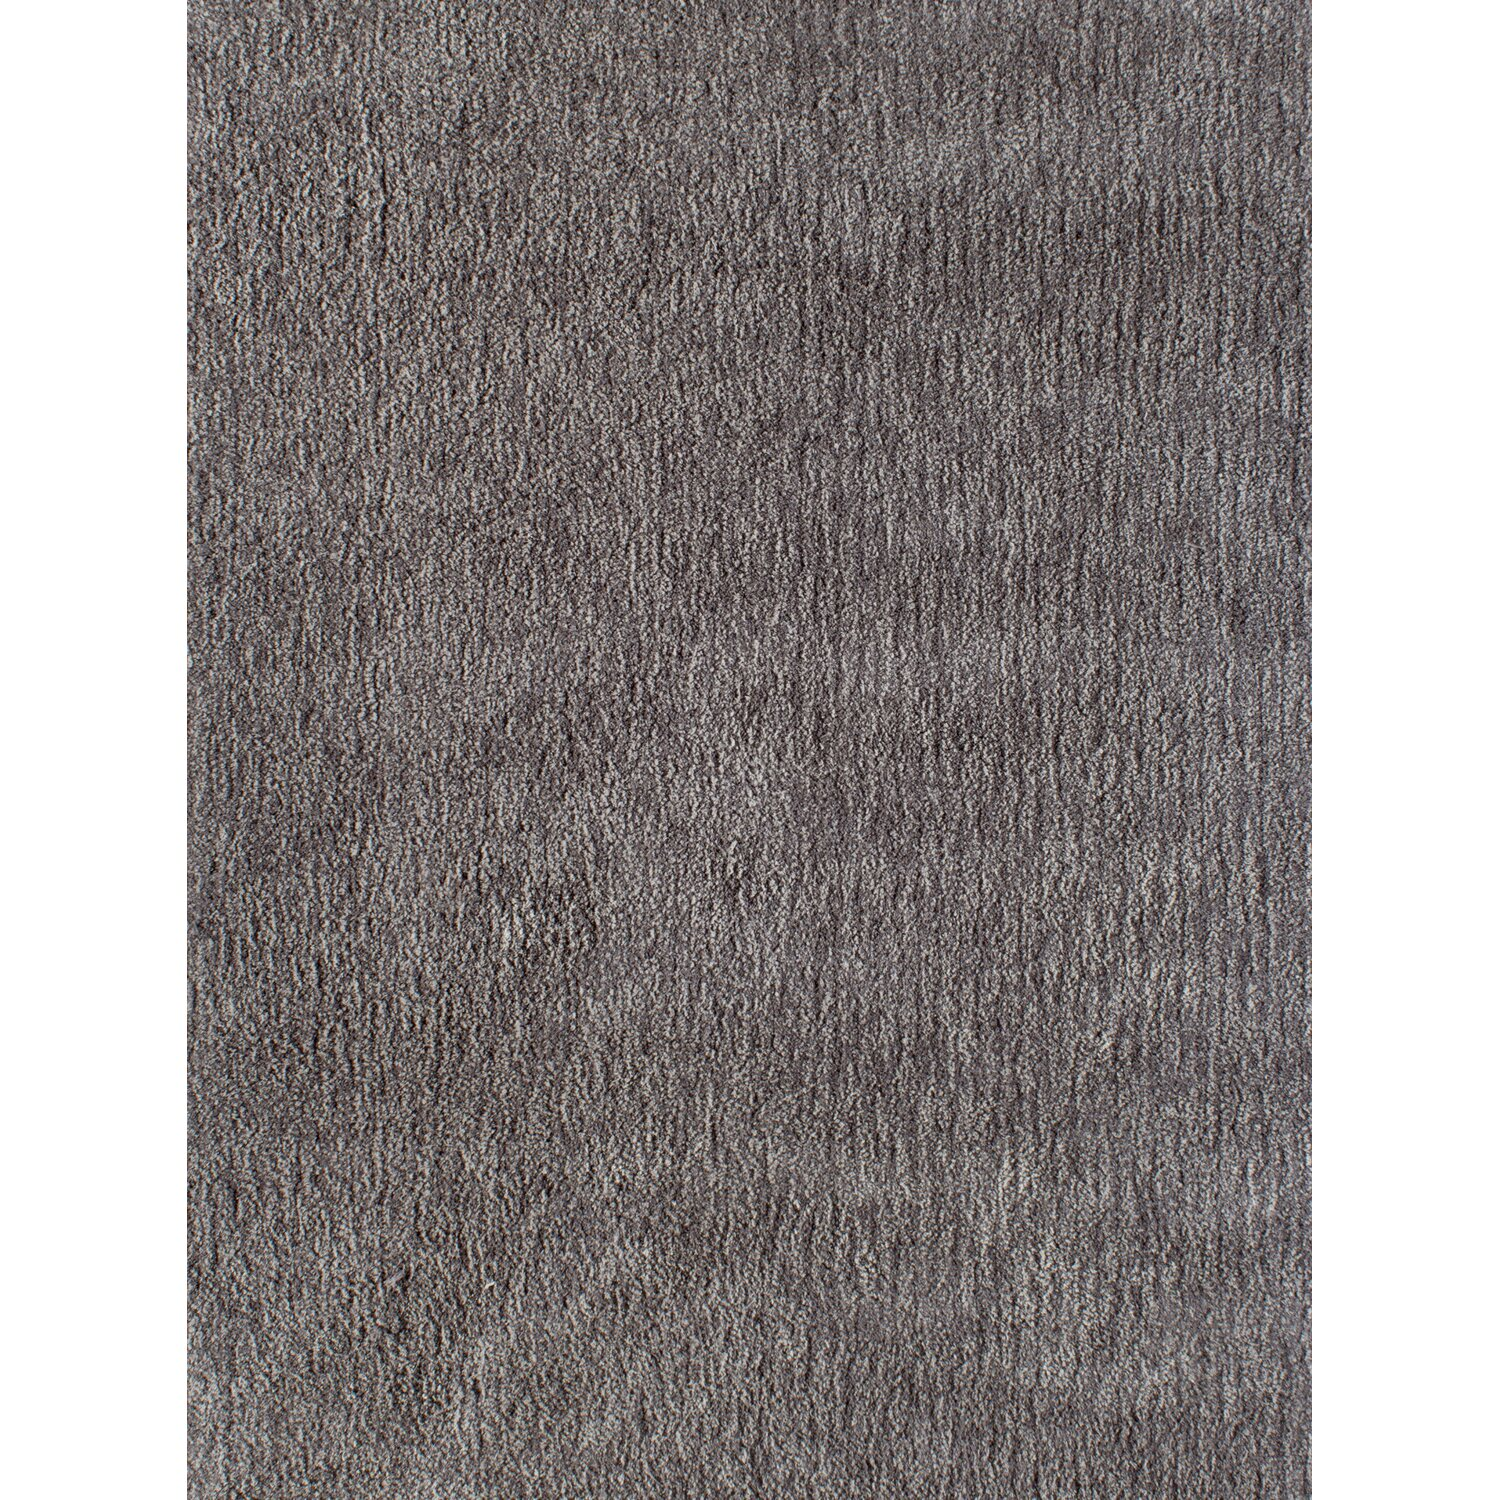 bb home passion Barbara Becker Teppich Touch 70 cm x 140 cm Taupe